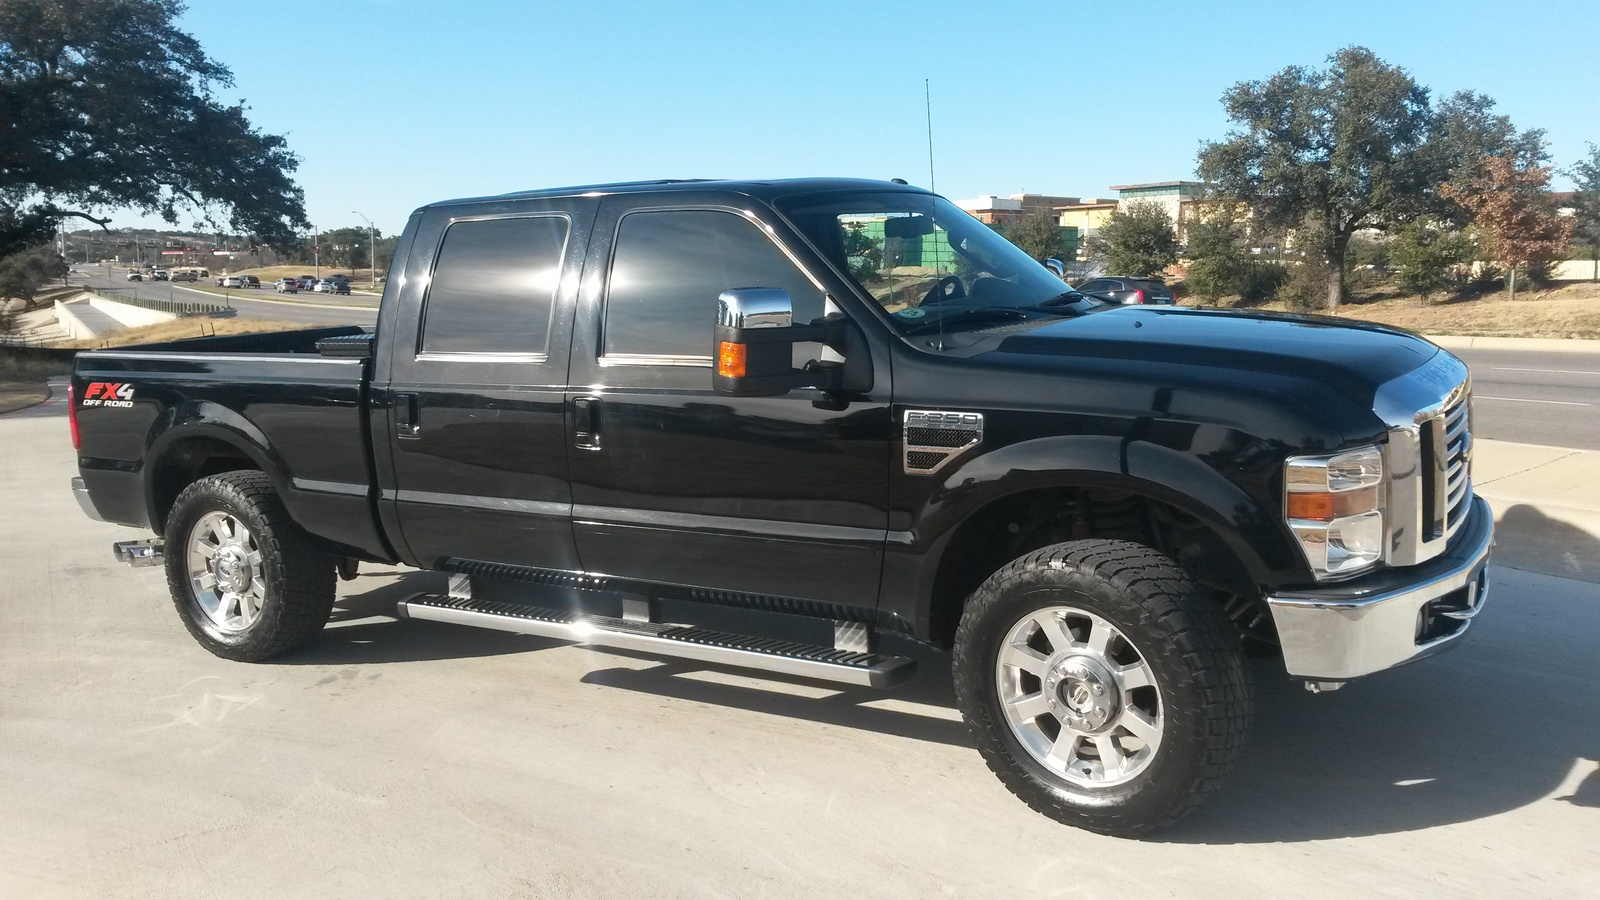 7 way trailer plug wiring diagram ford f150 air conditioning components 2010 pick up schematics data f 250 super duty photos informations articles rh bestcarmag com pin